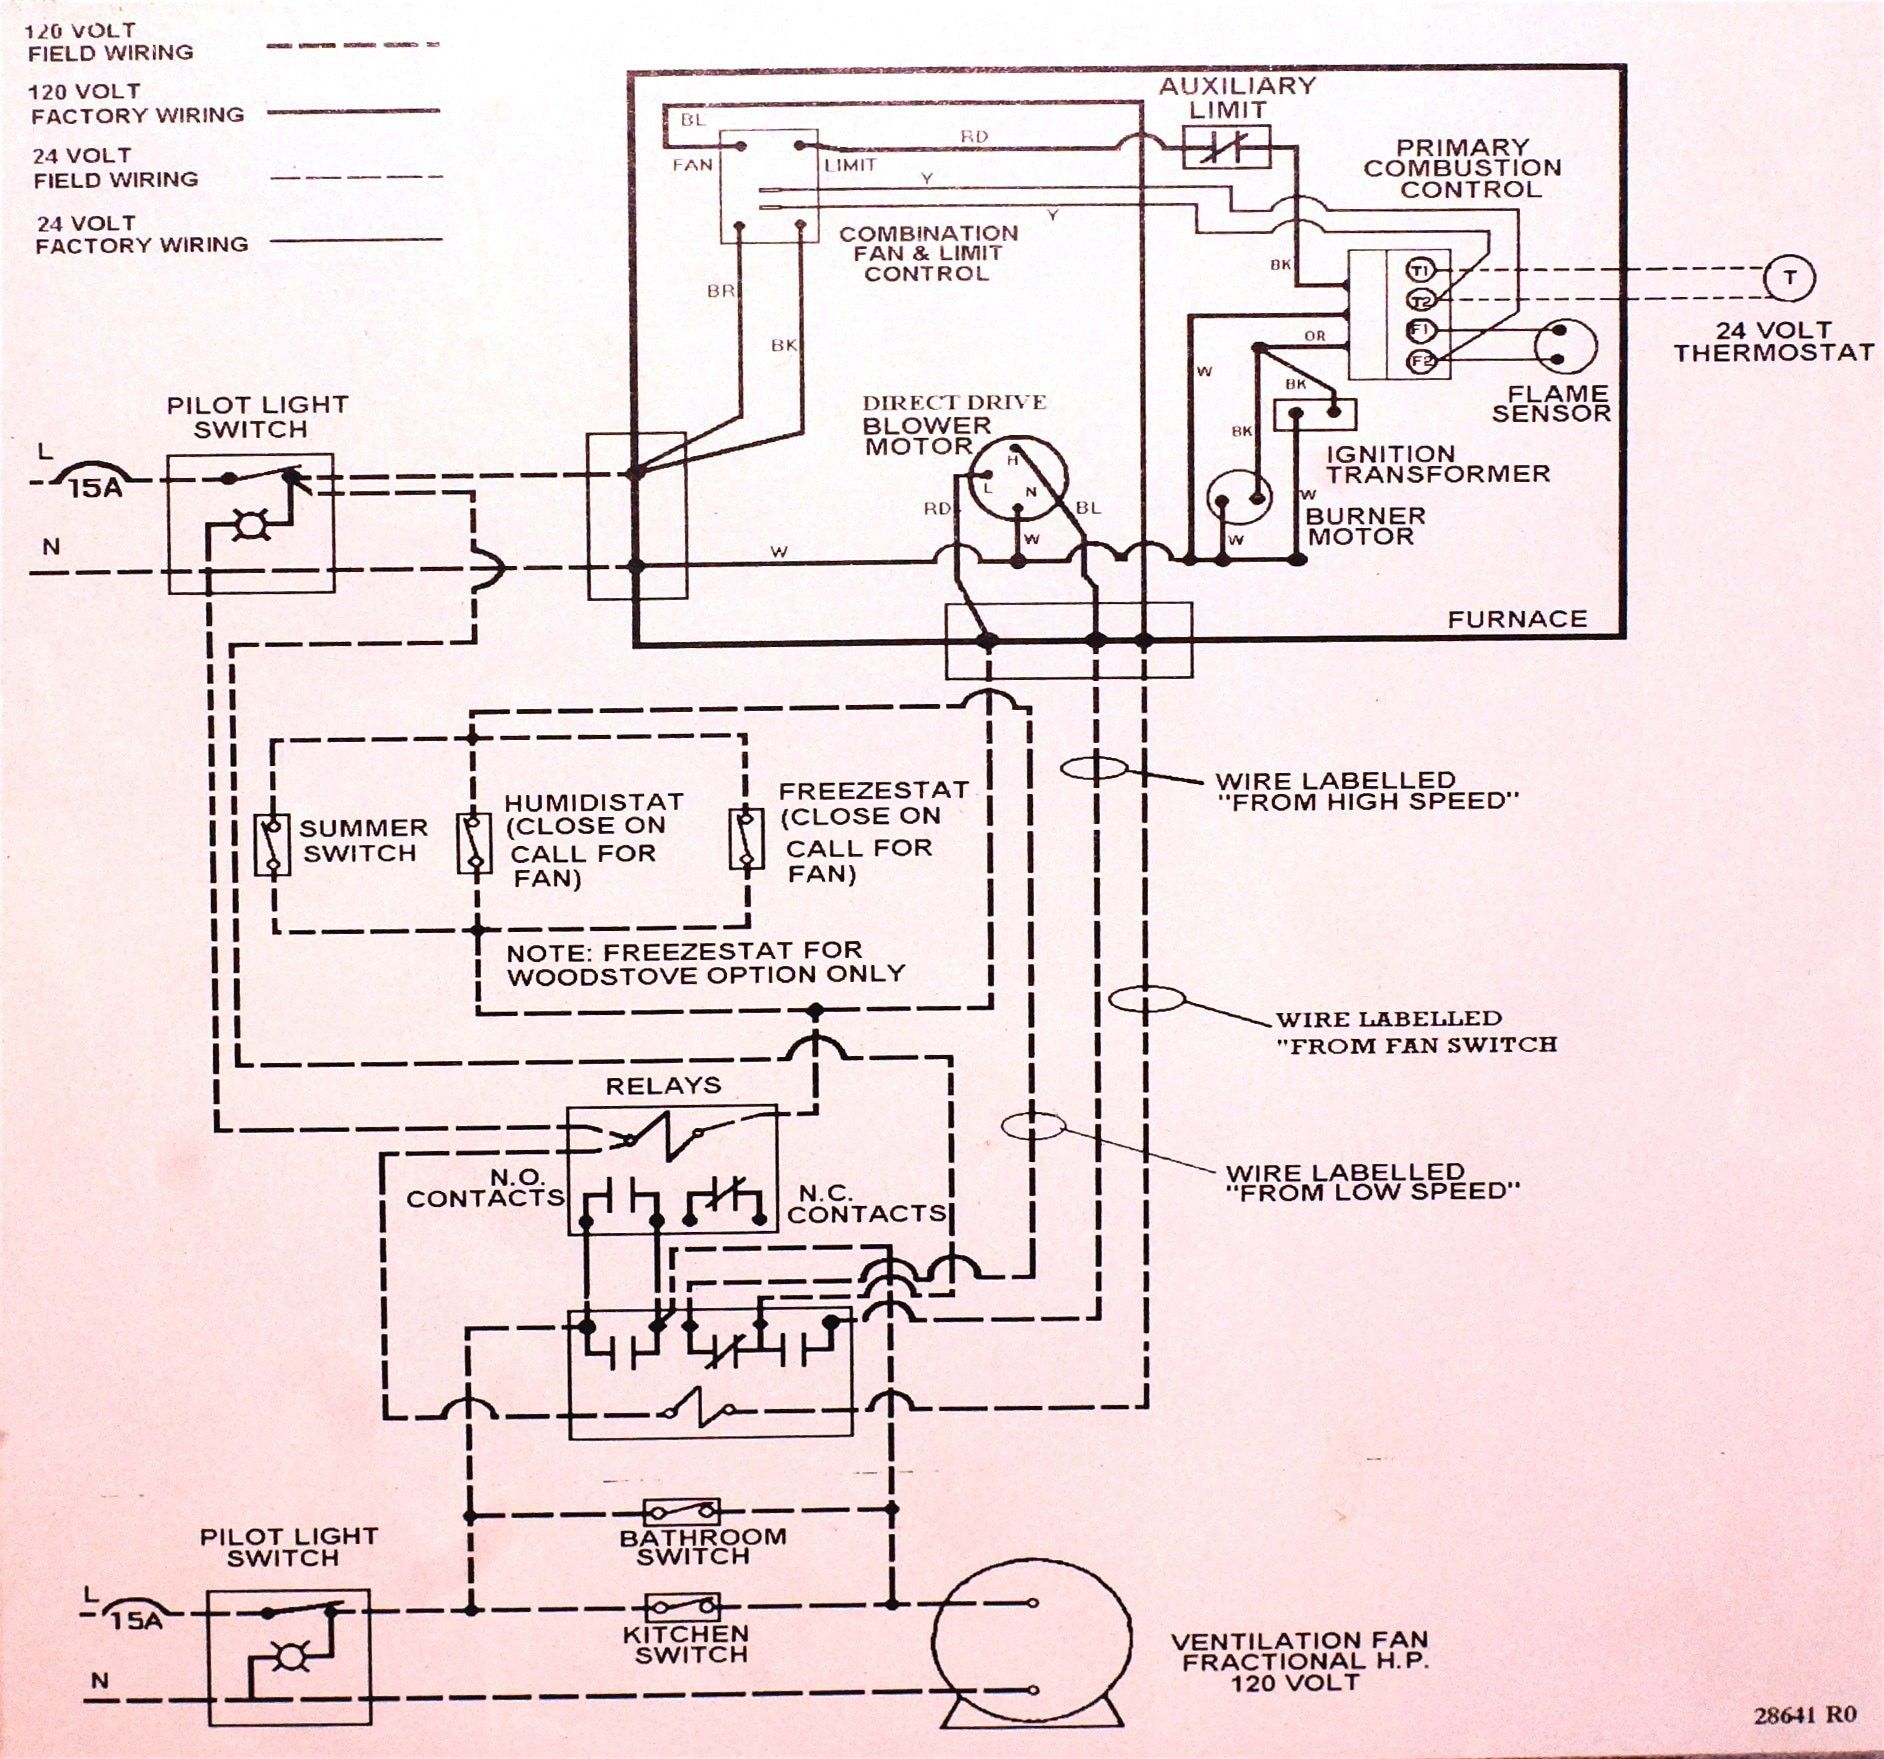 Diagram Diagramsample Diagramtemplate Wiringdiagram Diagramchart Worksheet Worksheettemplate Electric Furnace Gas Furnace Thermostat Wiring